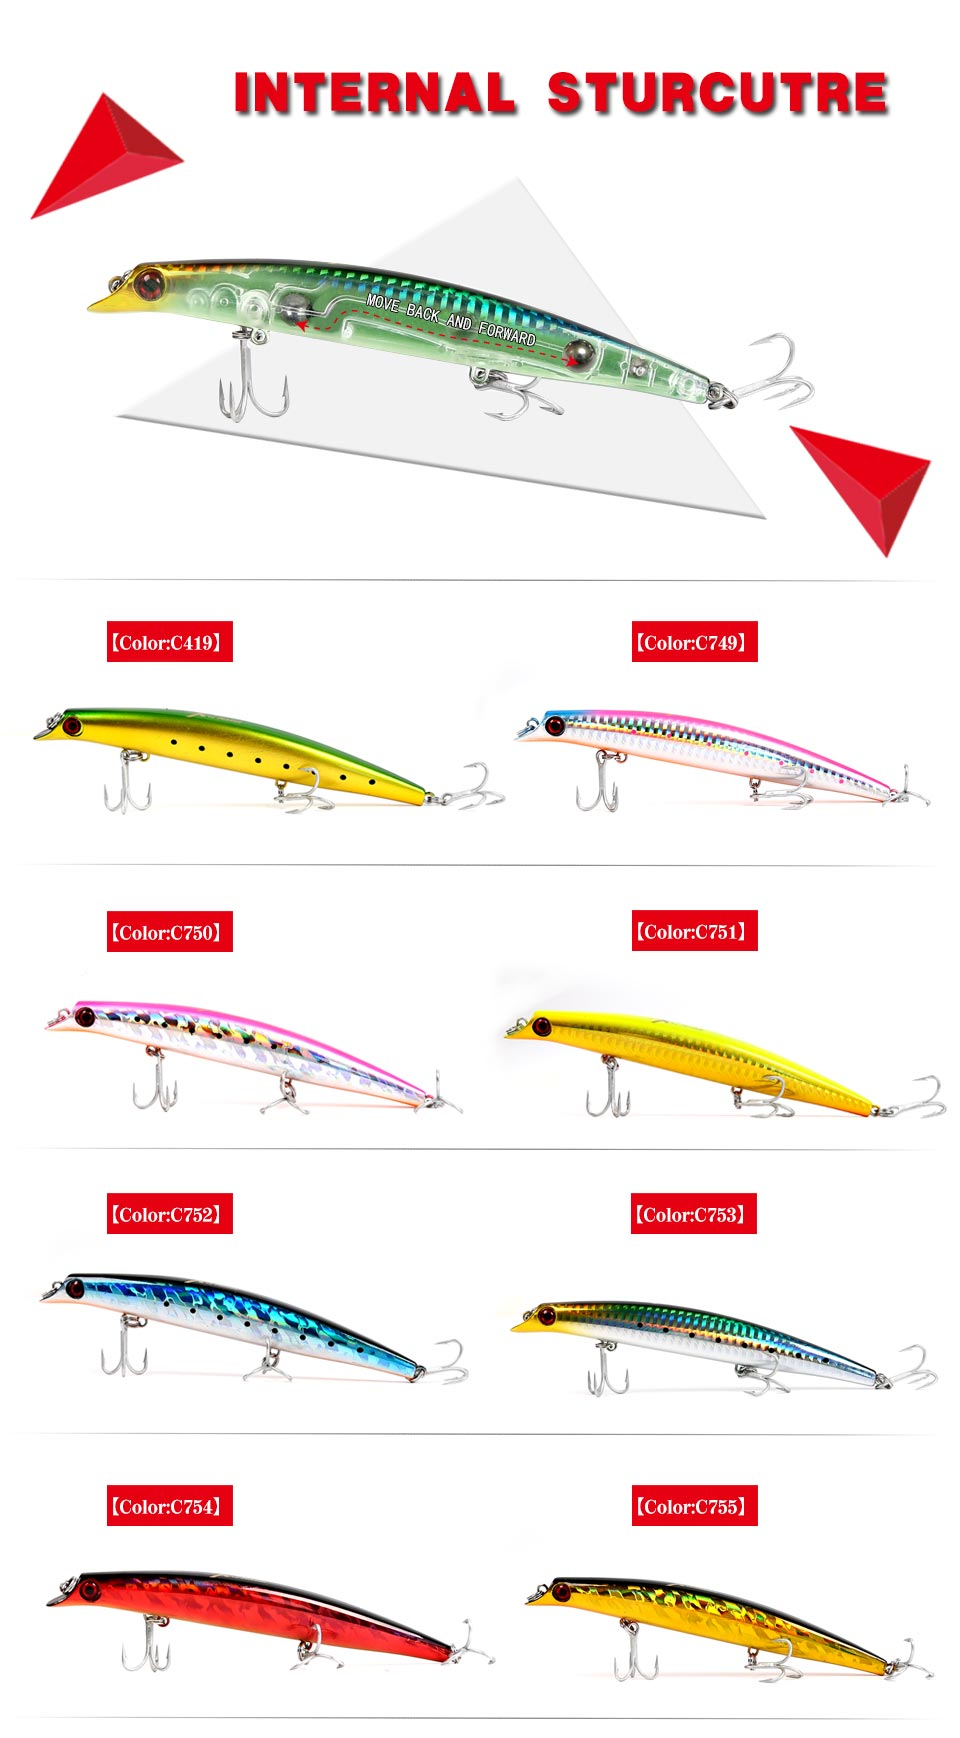 Kingdom Fishing Lures Hard Bait Floating 8.1g95mm 15.3g120mm 21g130mm Artificial Baits Minnow Wobblers Model 5326 (3)